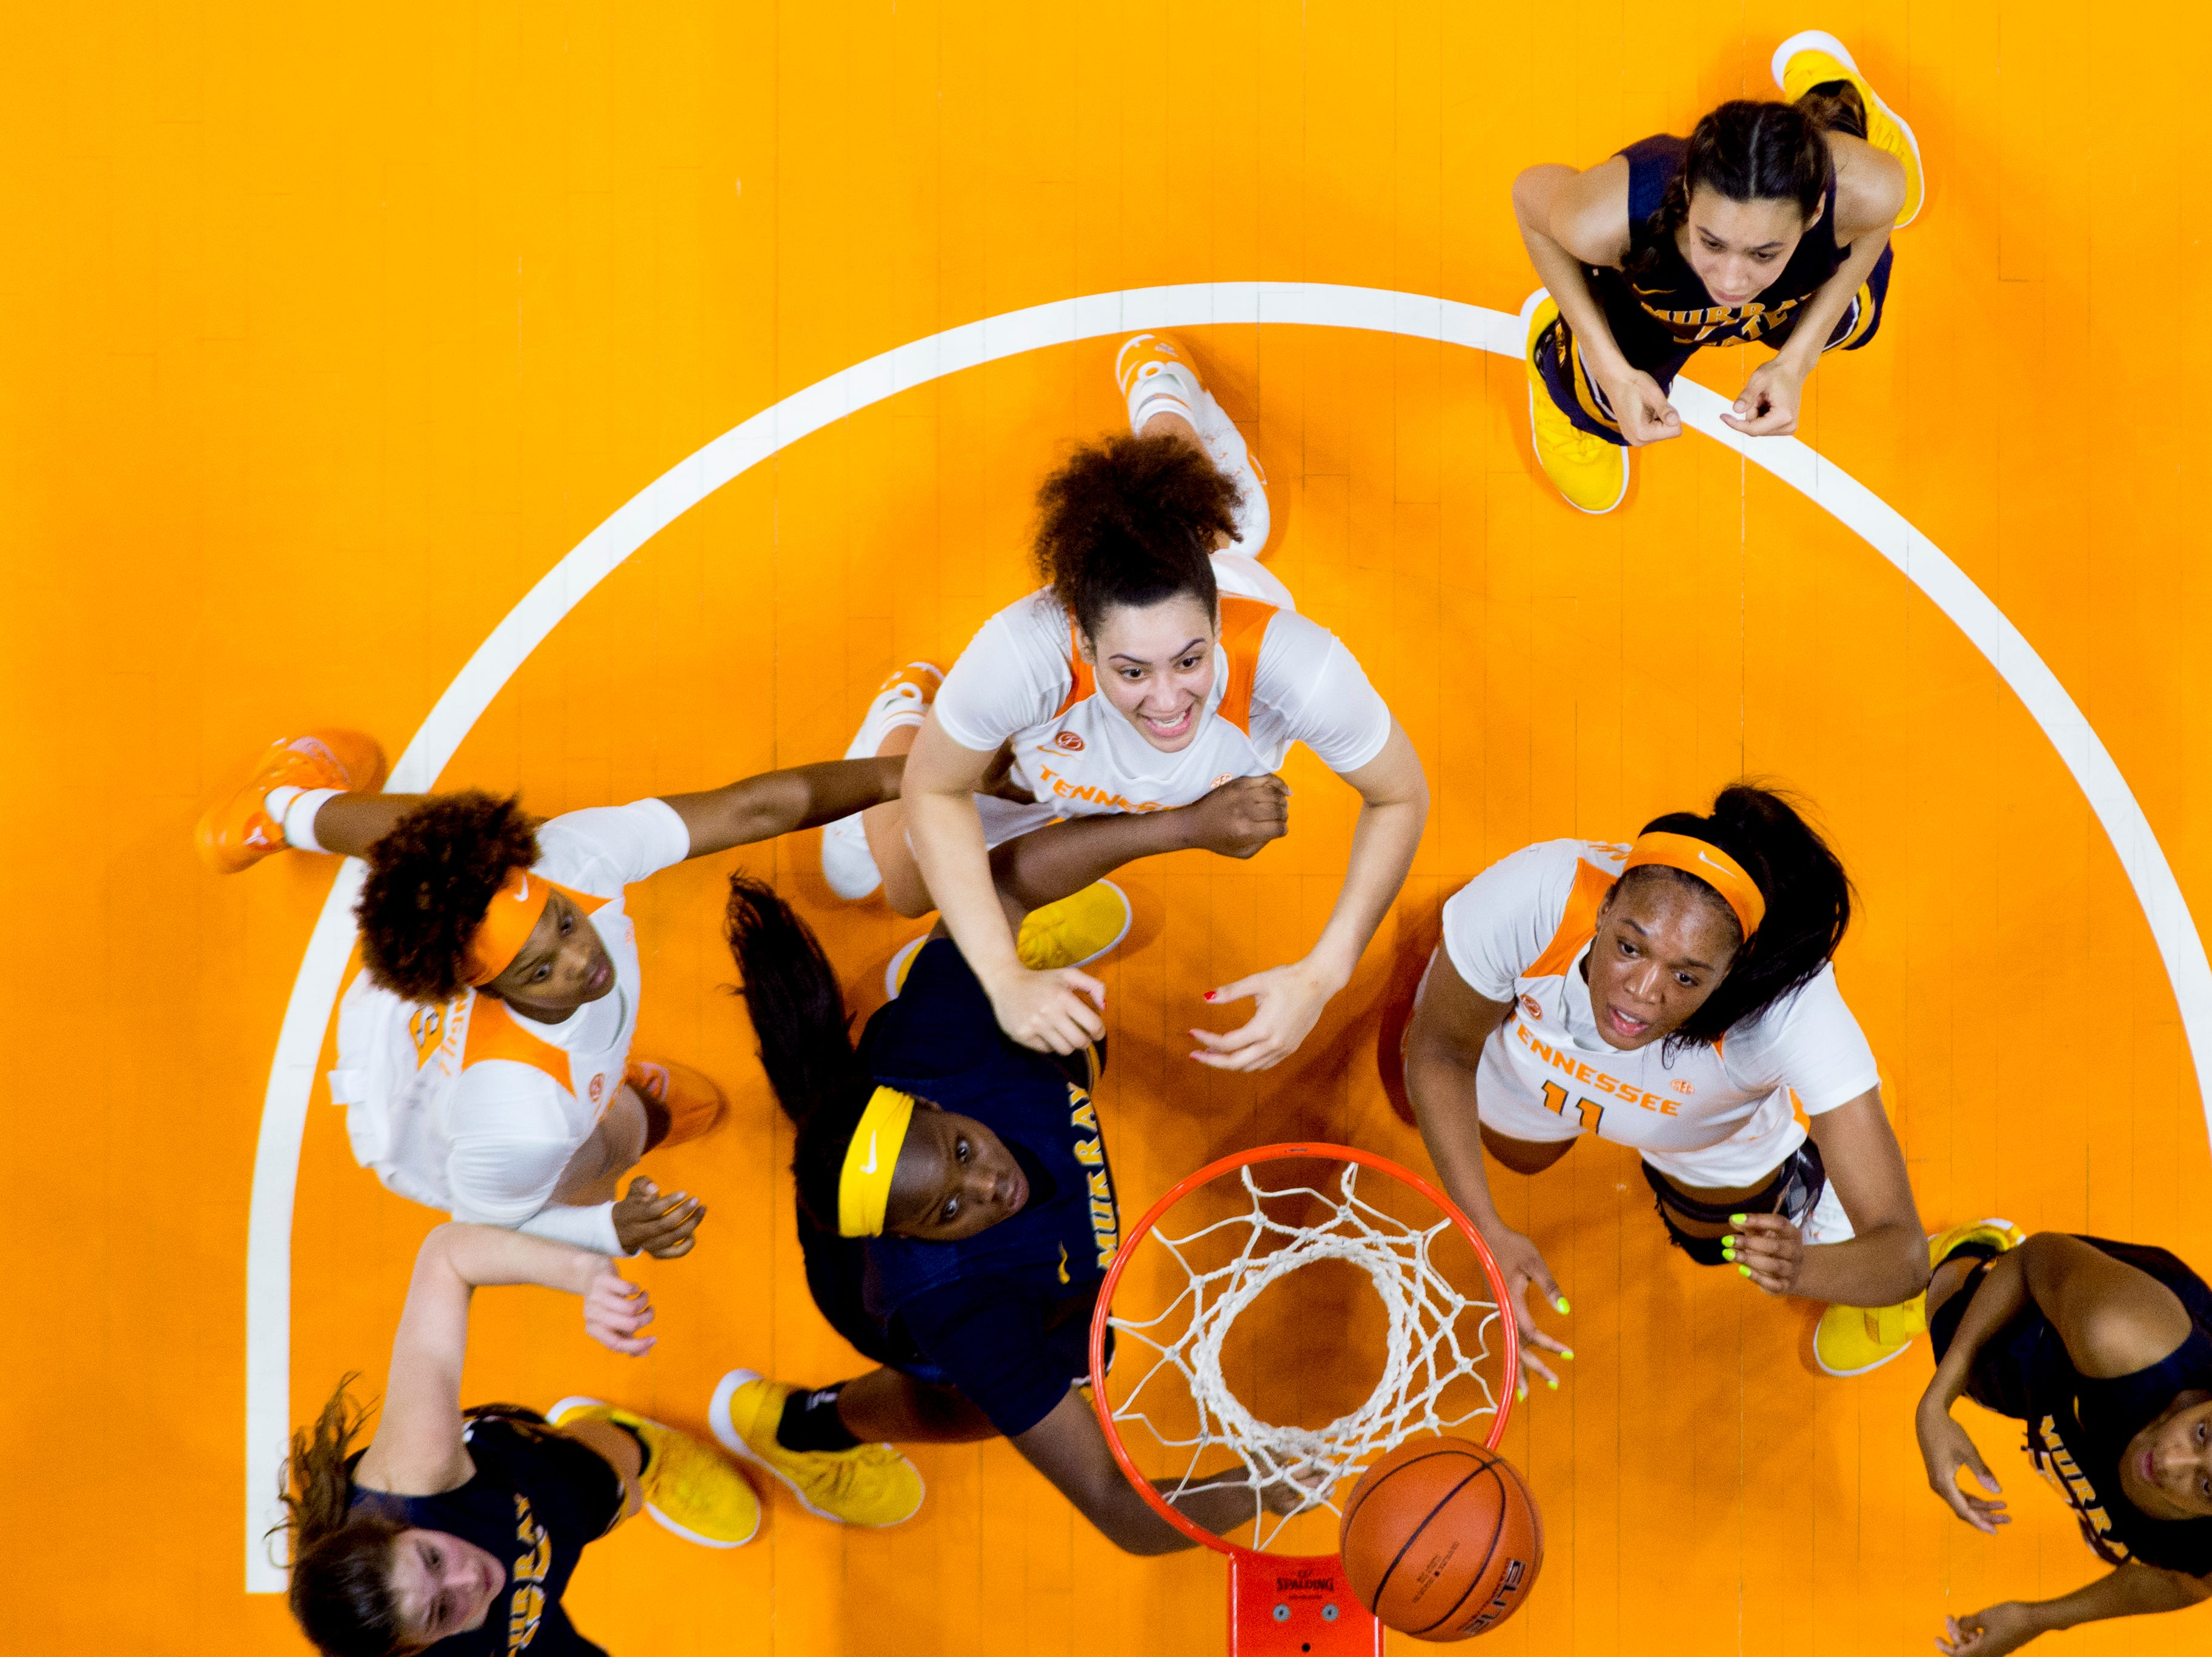 Players eye the ball above the rim during a game between the Tennessee Lady Vols and Murray State at Thompson-Boling Arena in Knoxville, Tennessee on Friday, December 28, 2018.